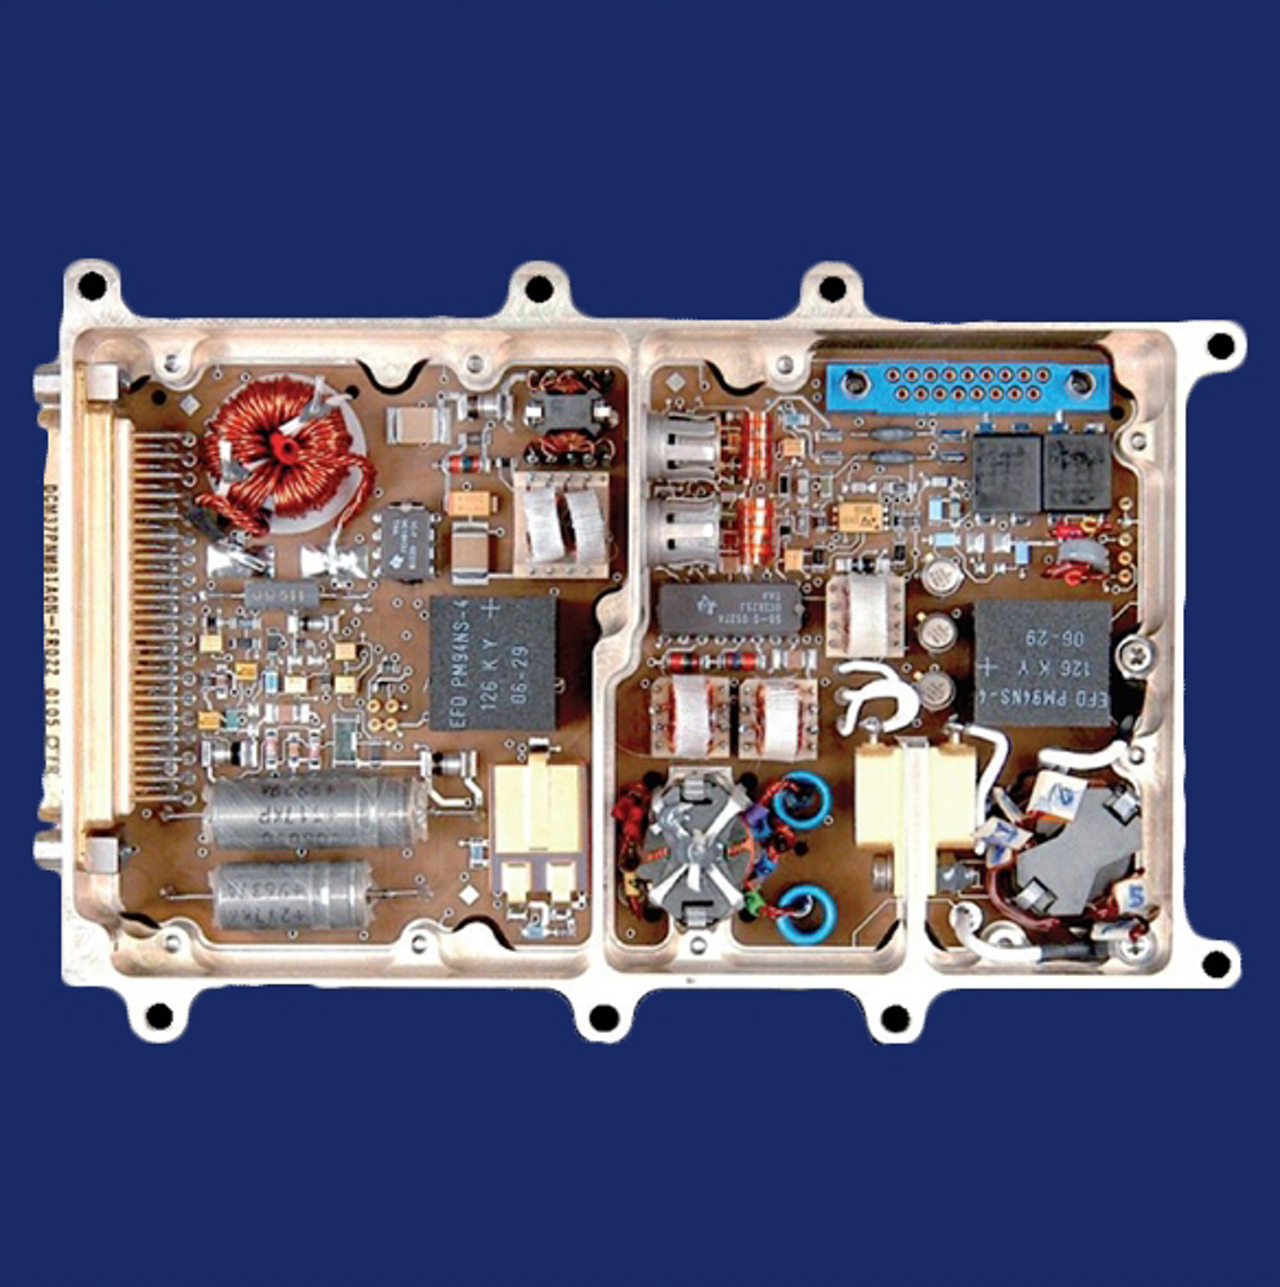 A close-up view of an 60-90 WRF GaN solid state power amplifier for space applications.